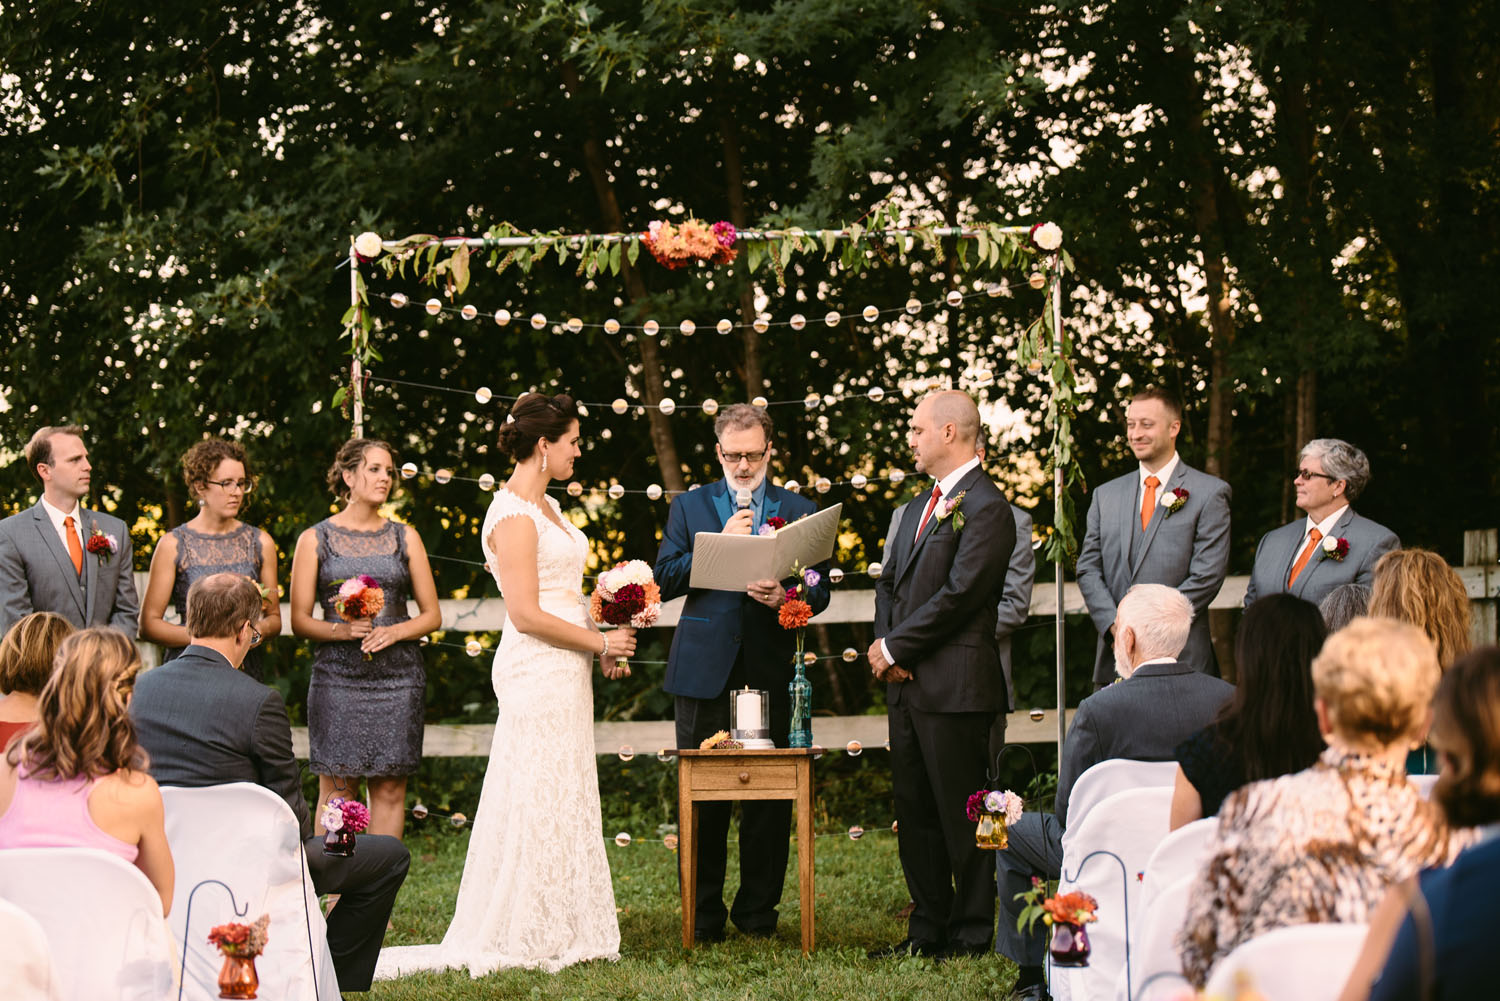 creative-outdoor-wedding-photography-minnesota.jpg